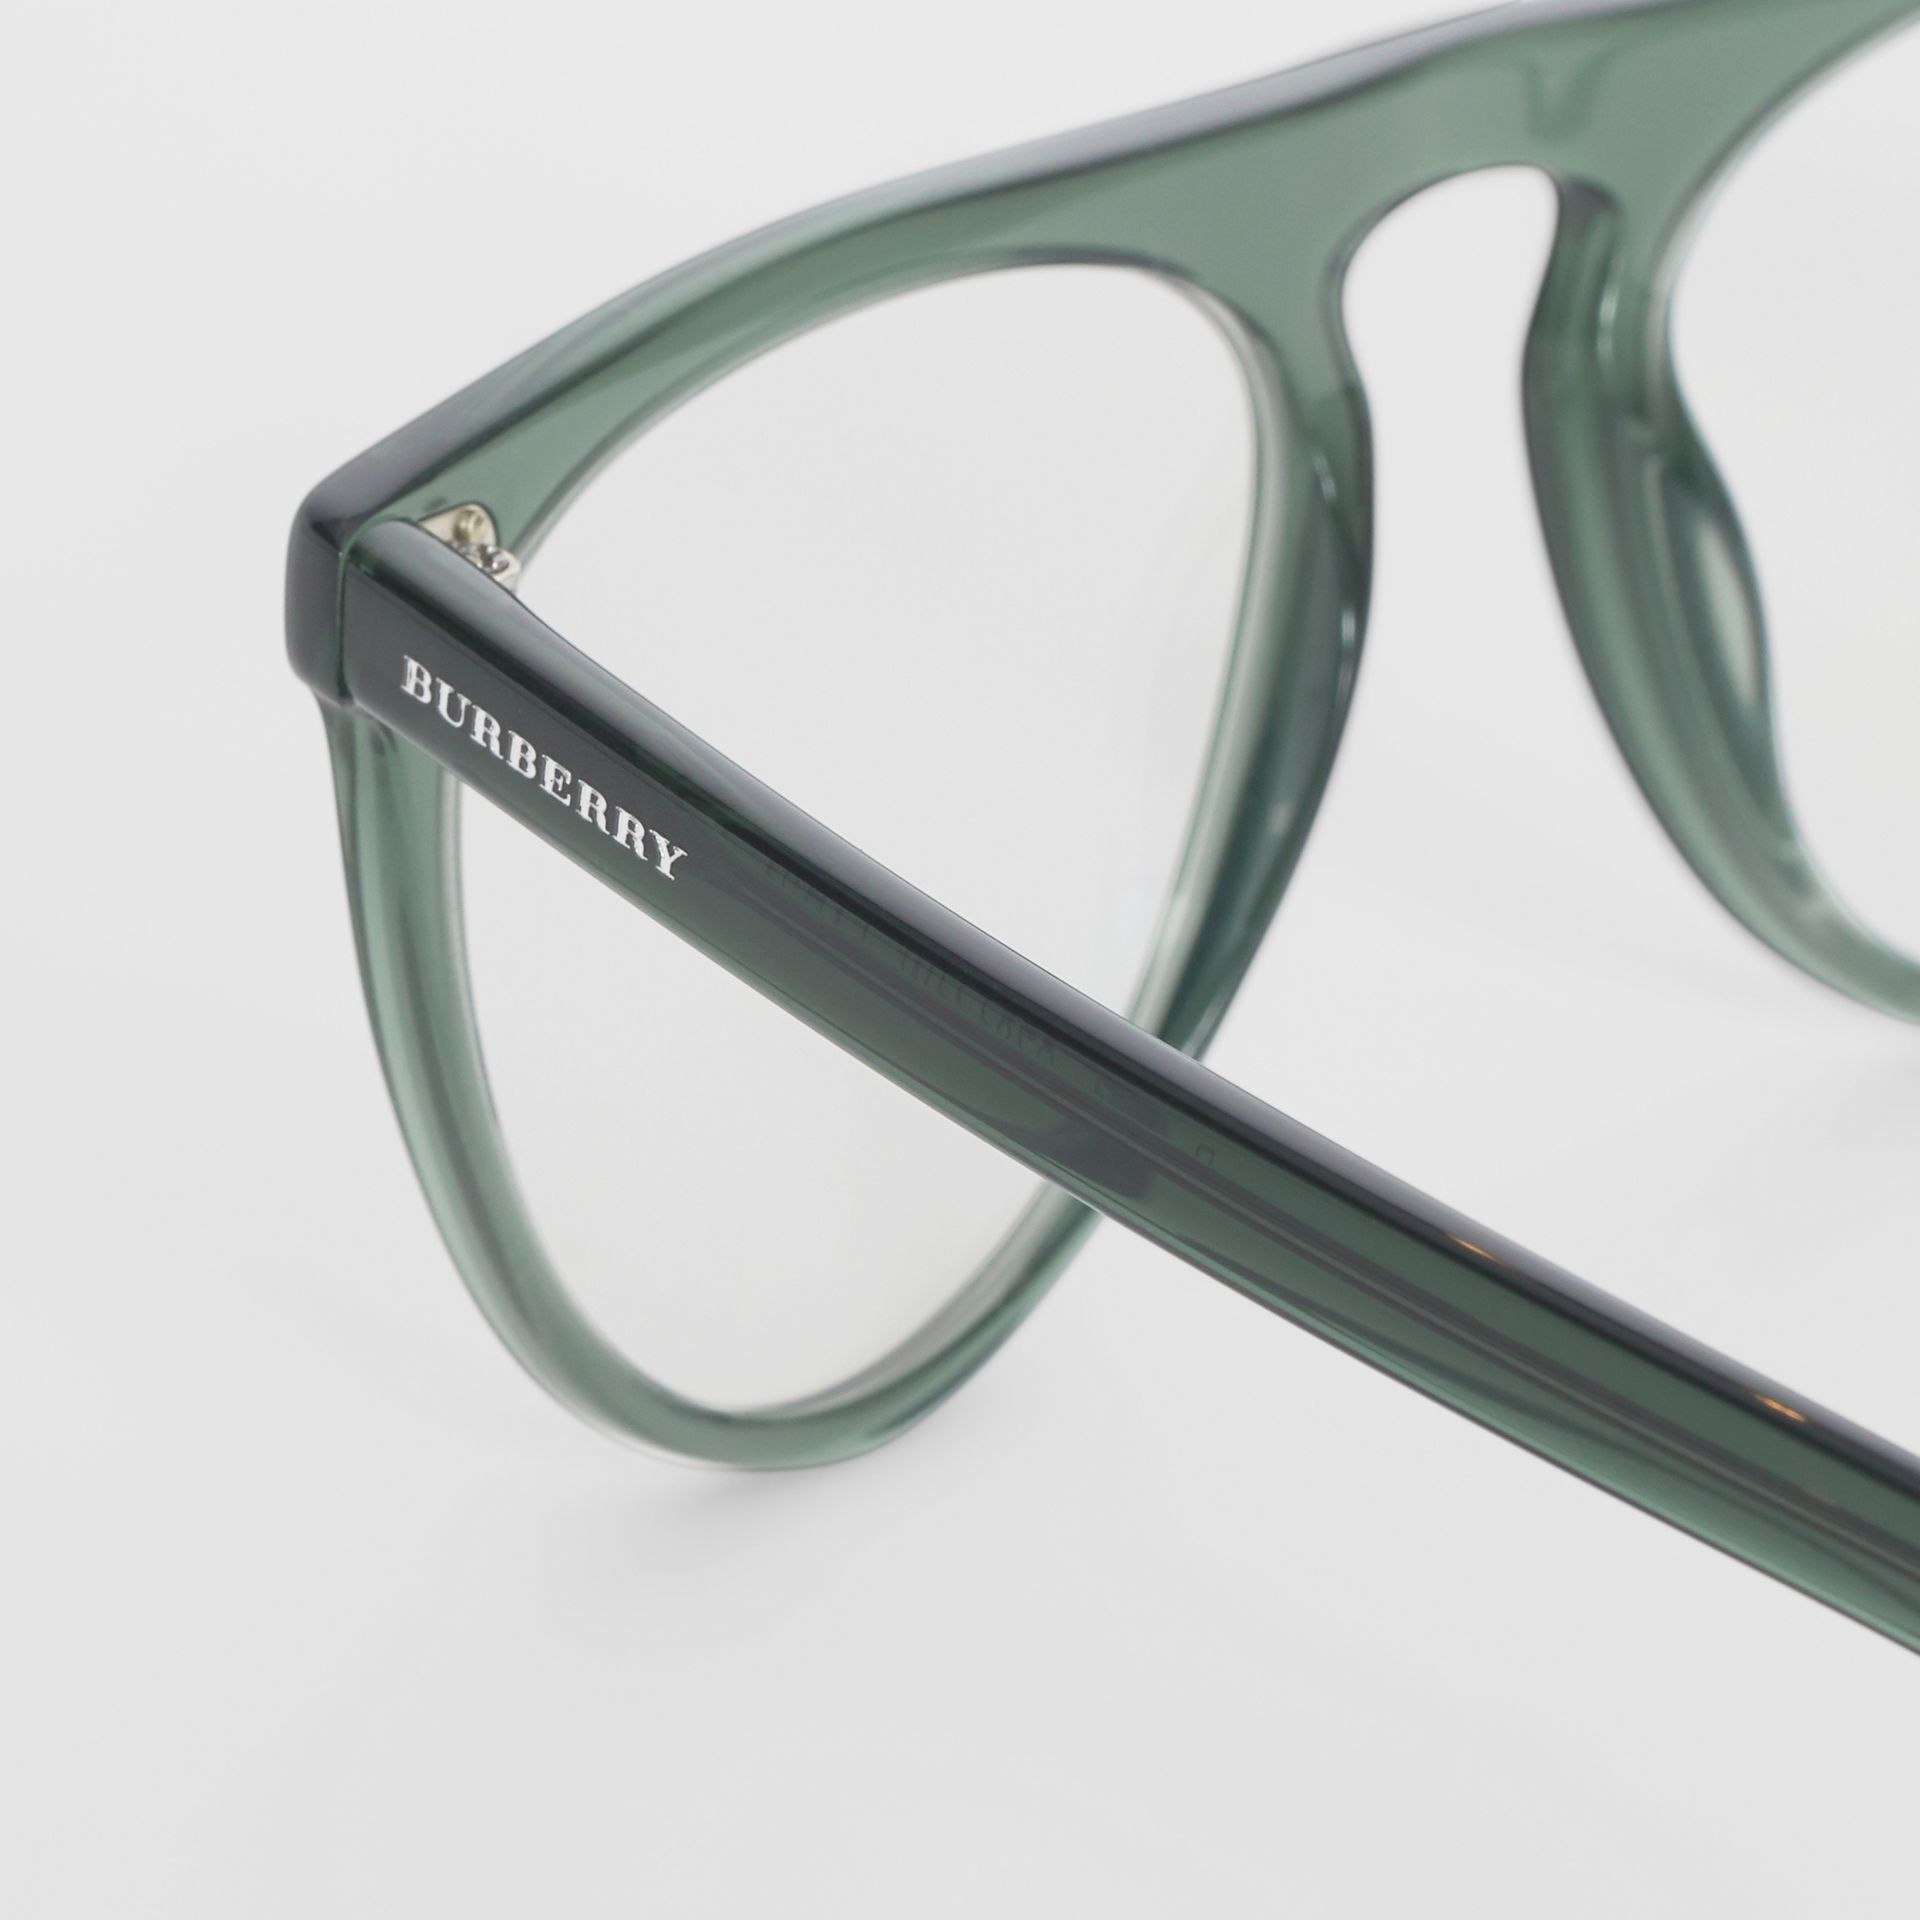 Keyhole D-shaped Optical Frames in Green - Men | Burberry Canada - gallery image 1